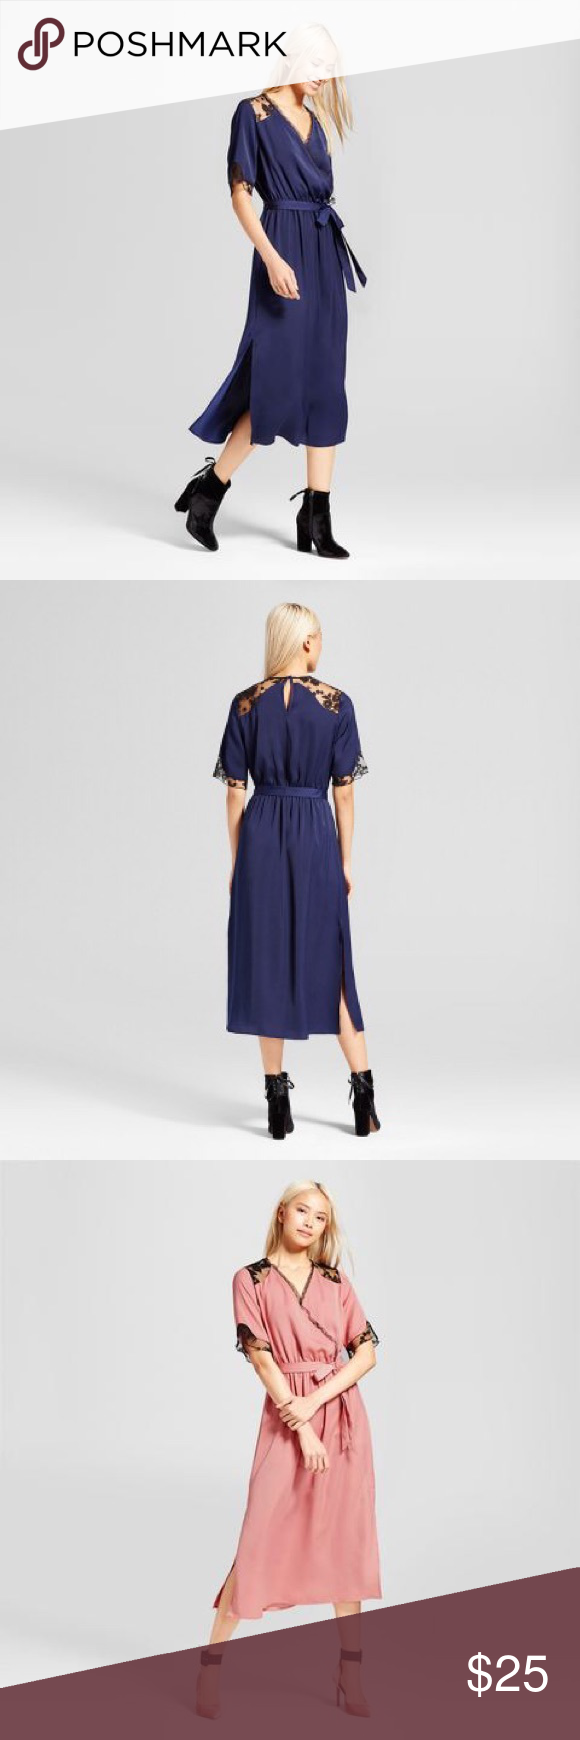 Whowhatwear X Target Satin And Lace Midi Dress Lace Midi Dress Navy Midi Dress Who What Wear [ 1740 x 580 Pixel ]